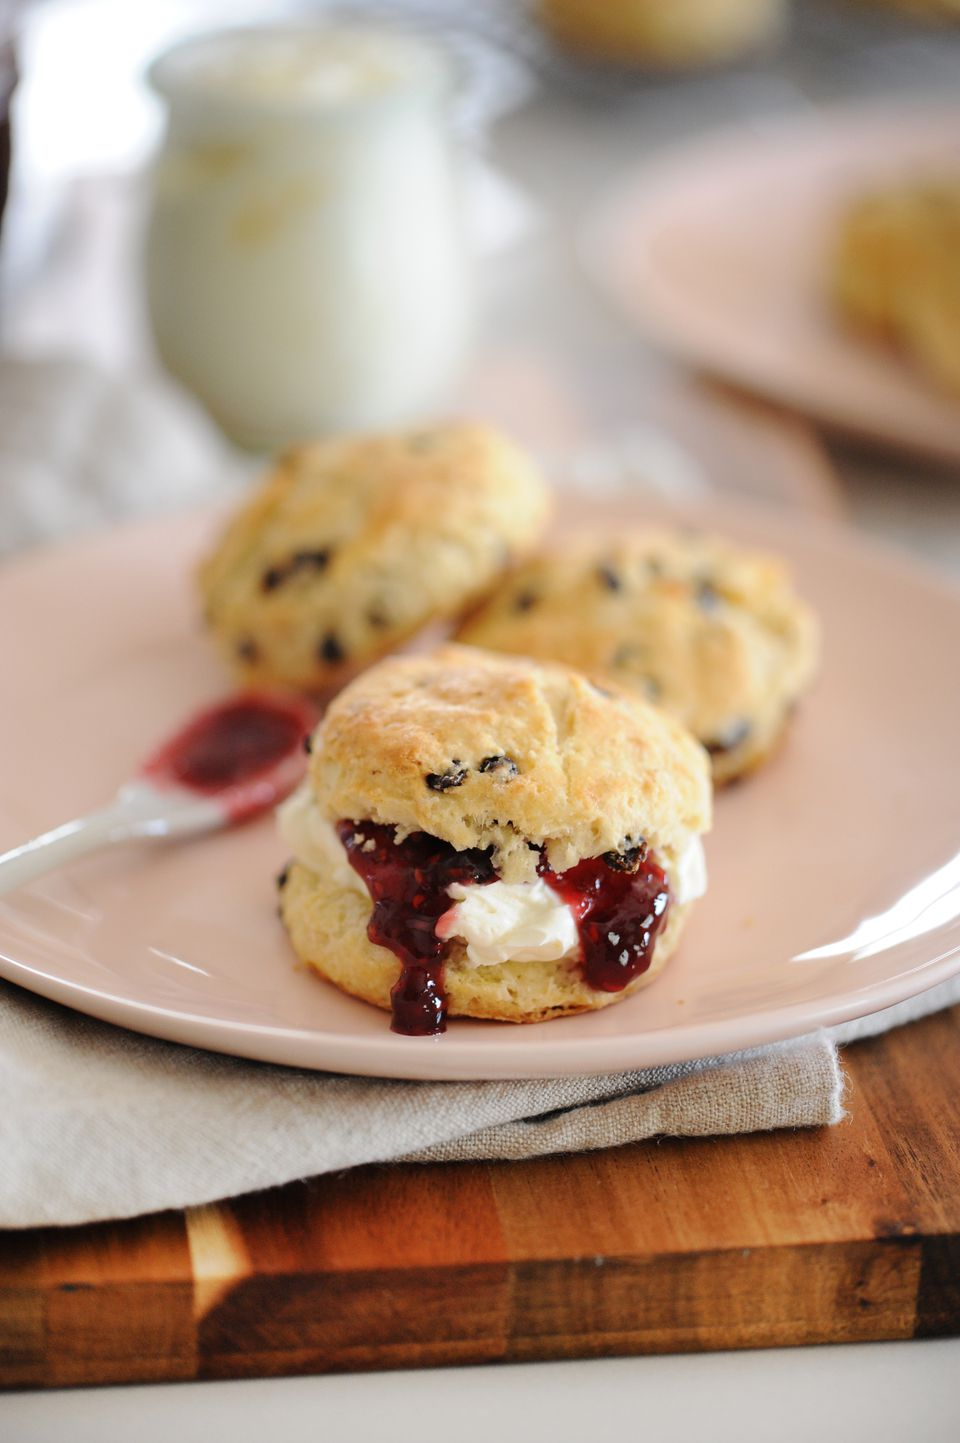 Real Irish Scones spread with jam and set on a plate.